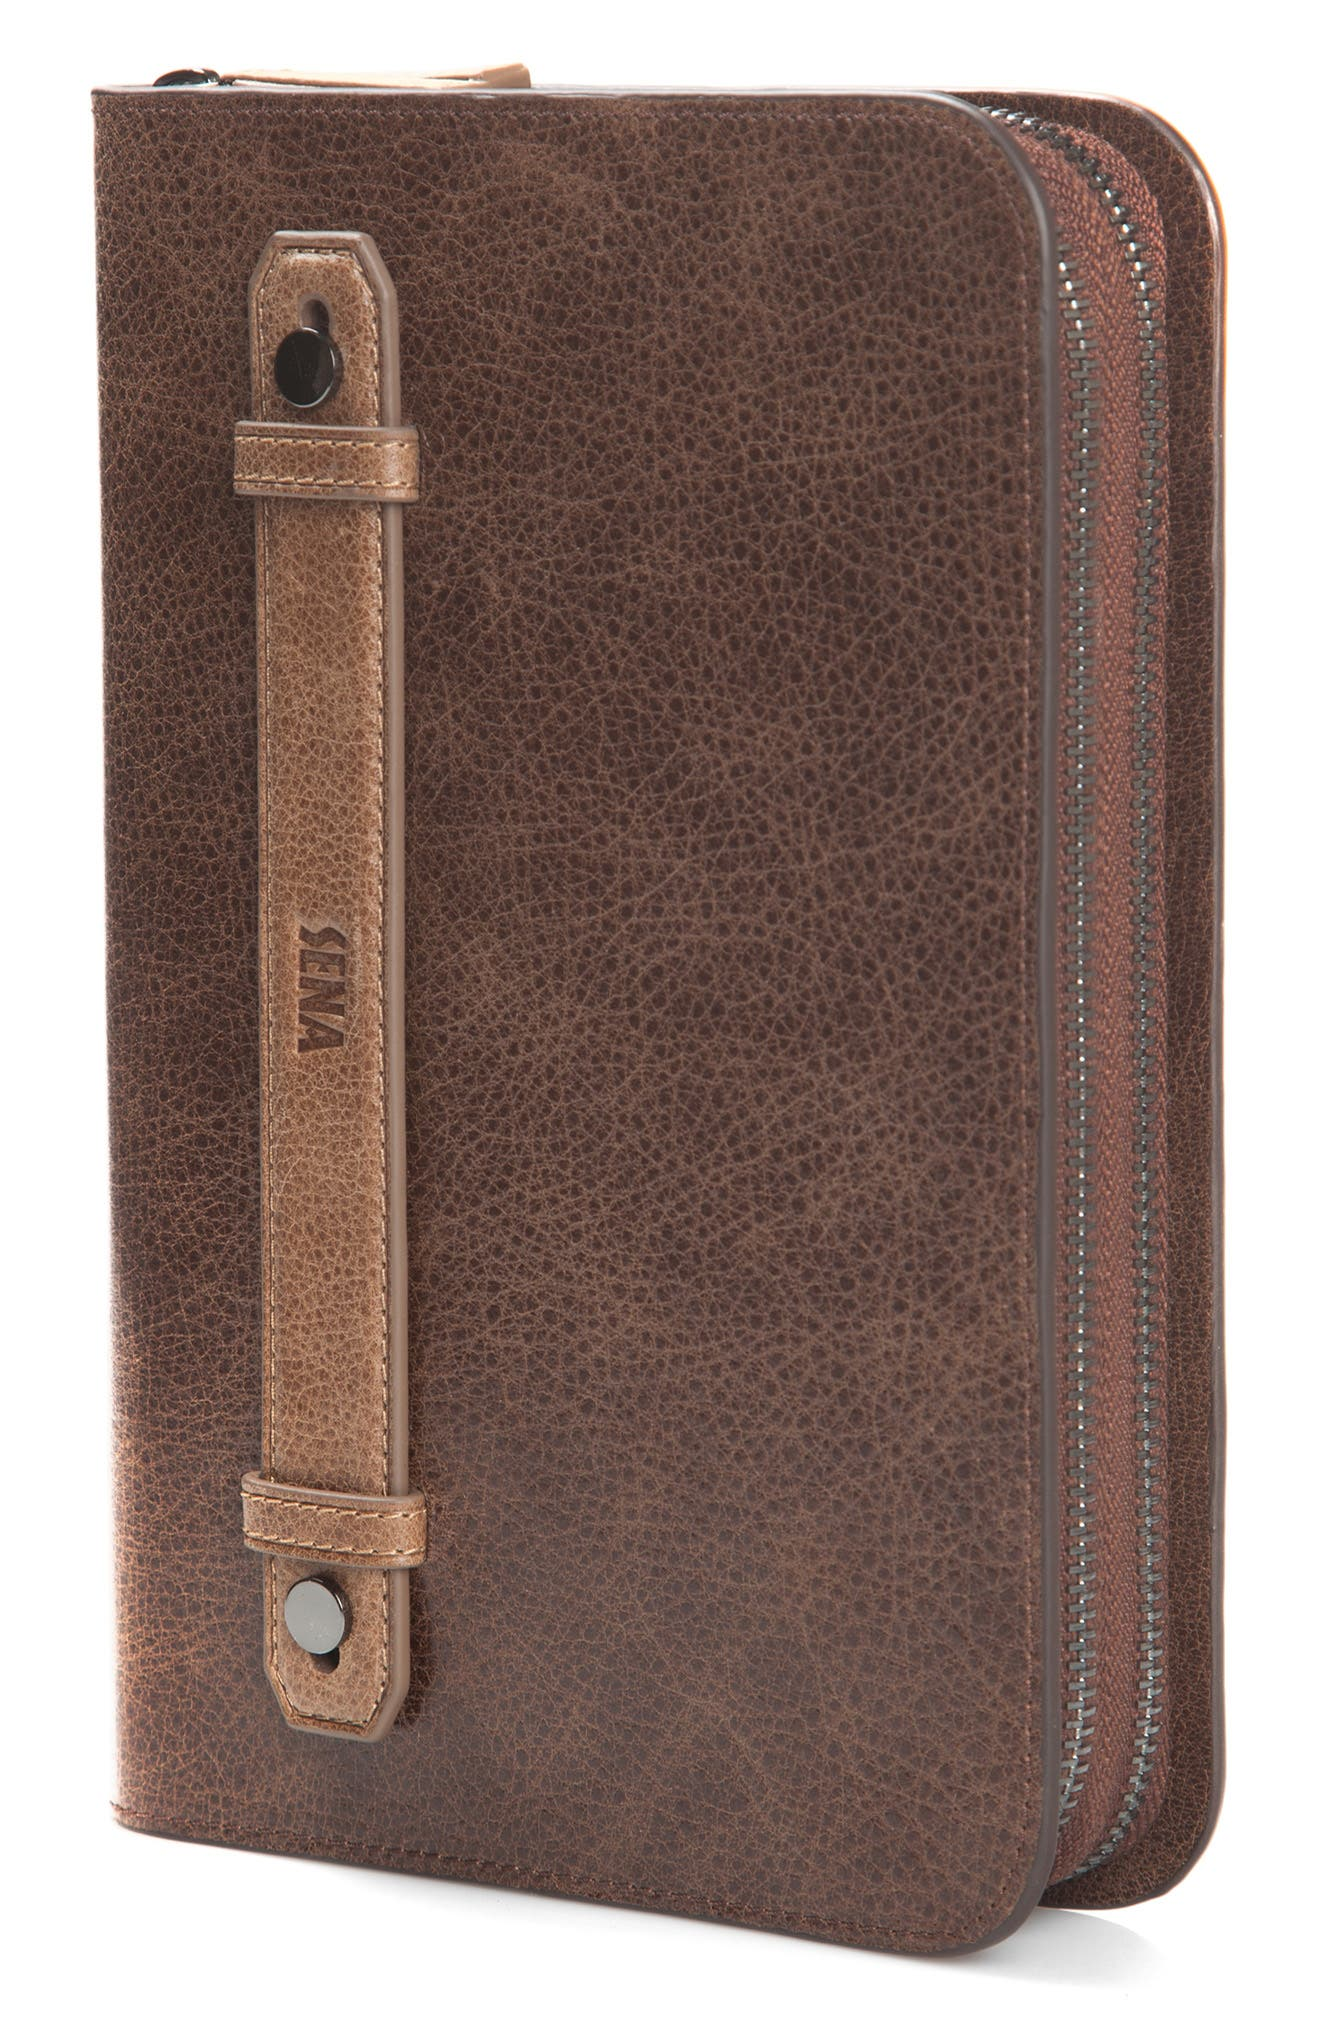 'Heritage' iPad mini All-in-One Case,                             Alternate thumbnail 2, color,                             213